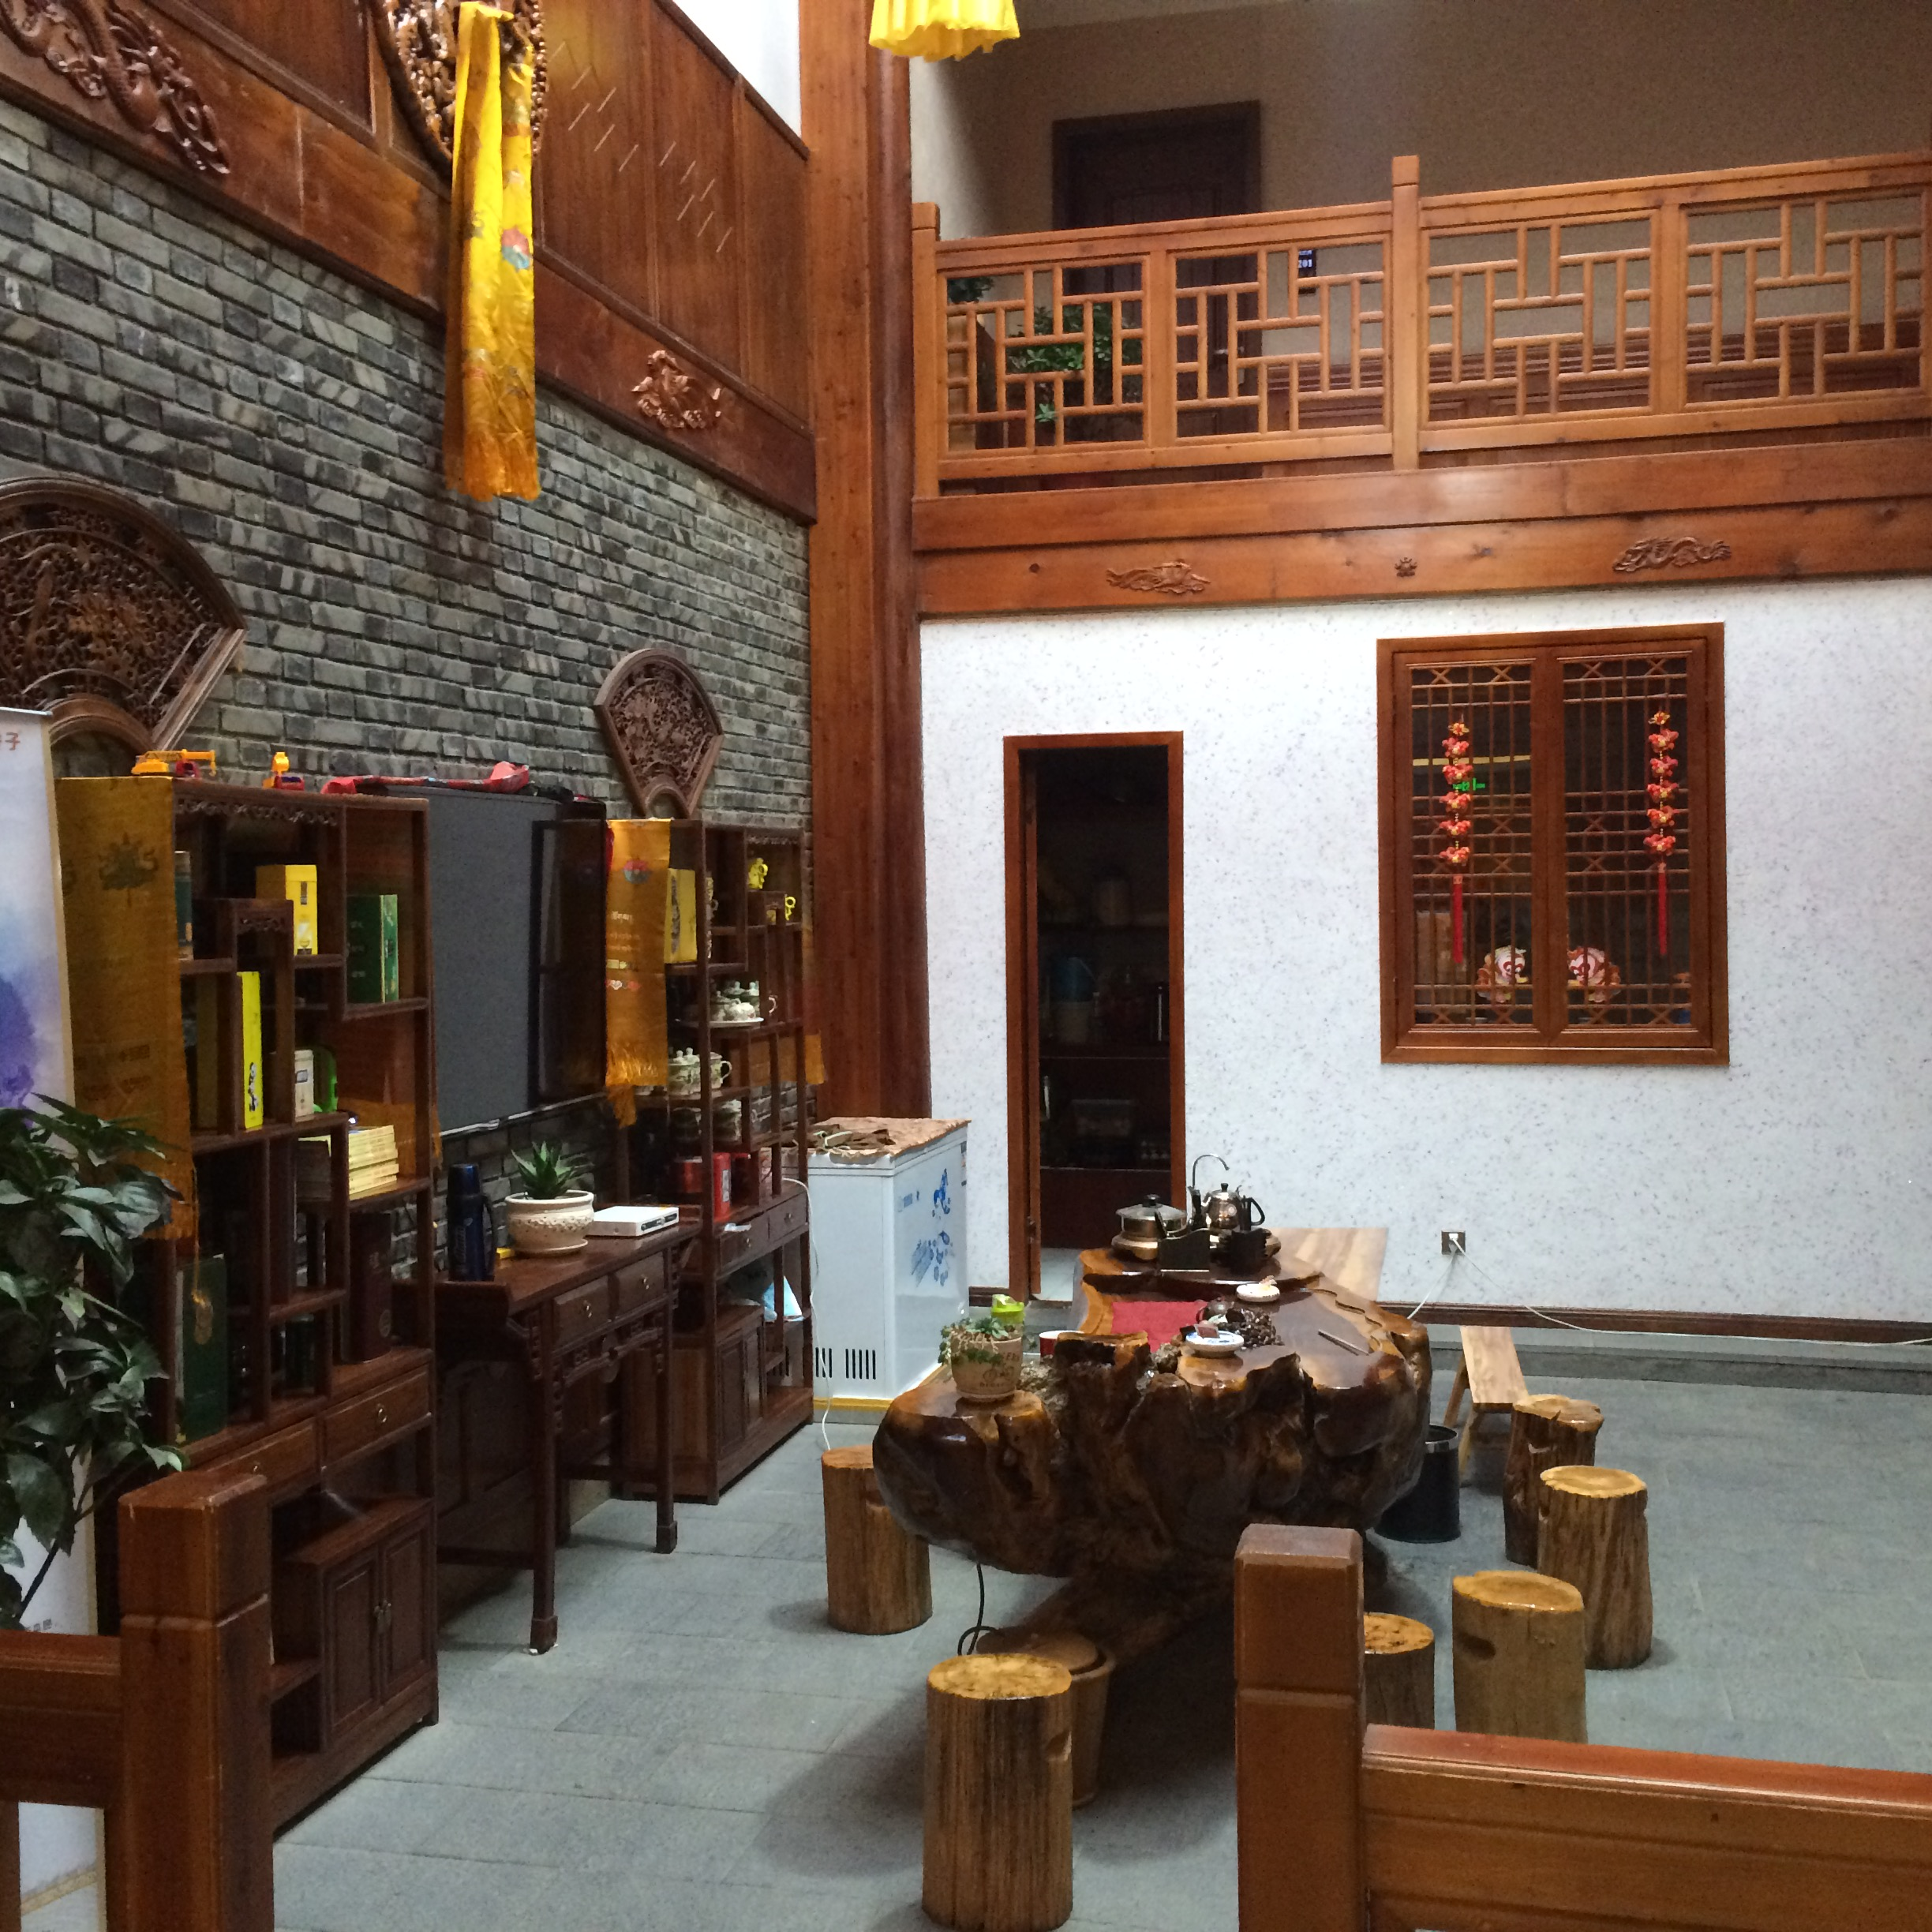 Xiangxiong guesthouse's tea house